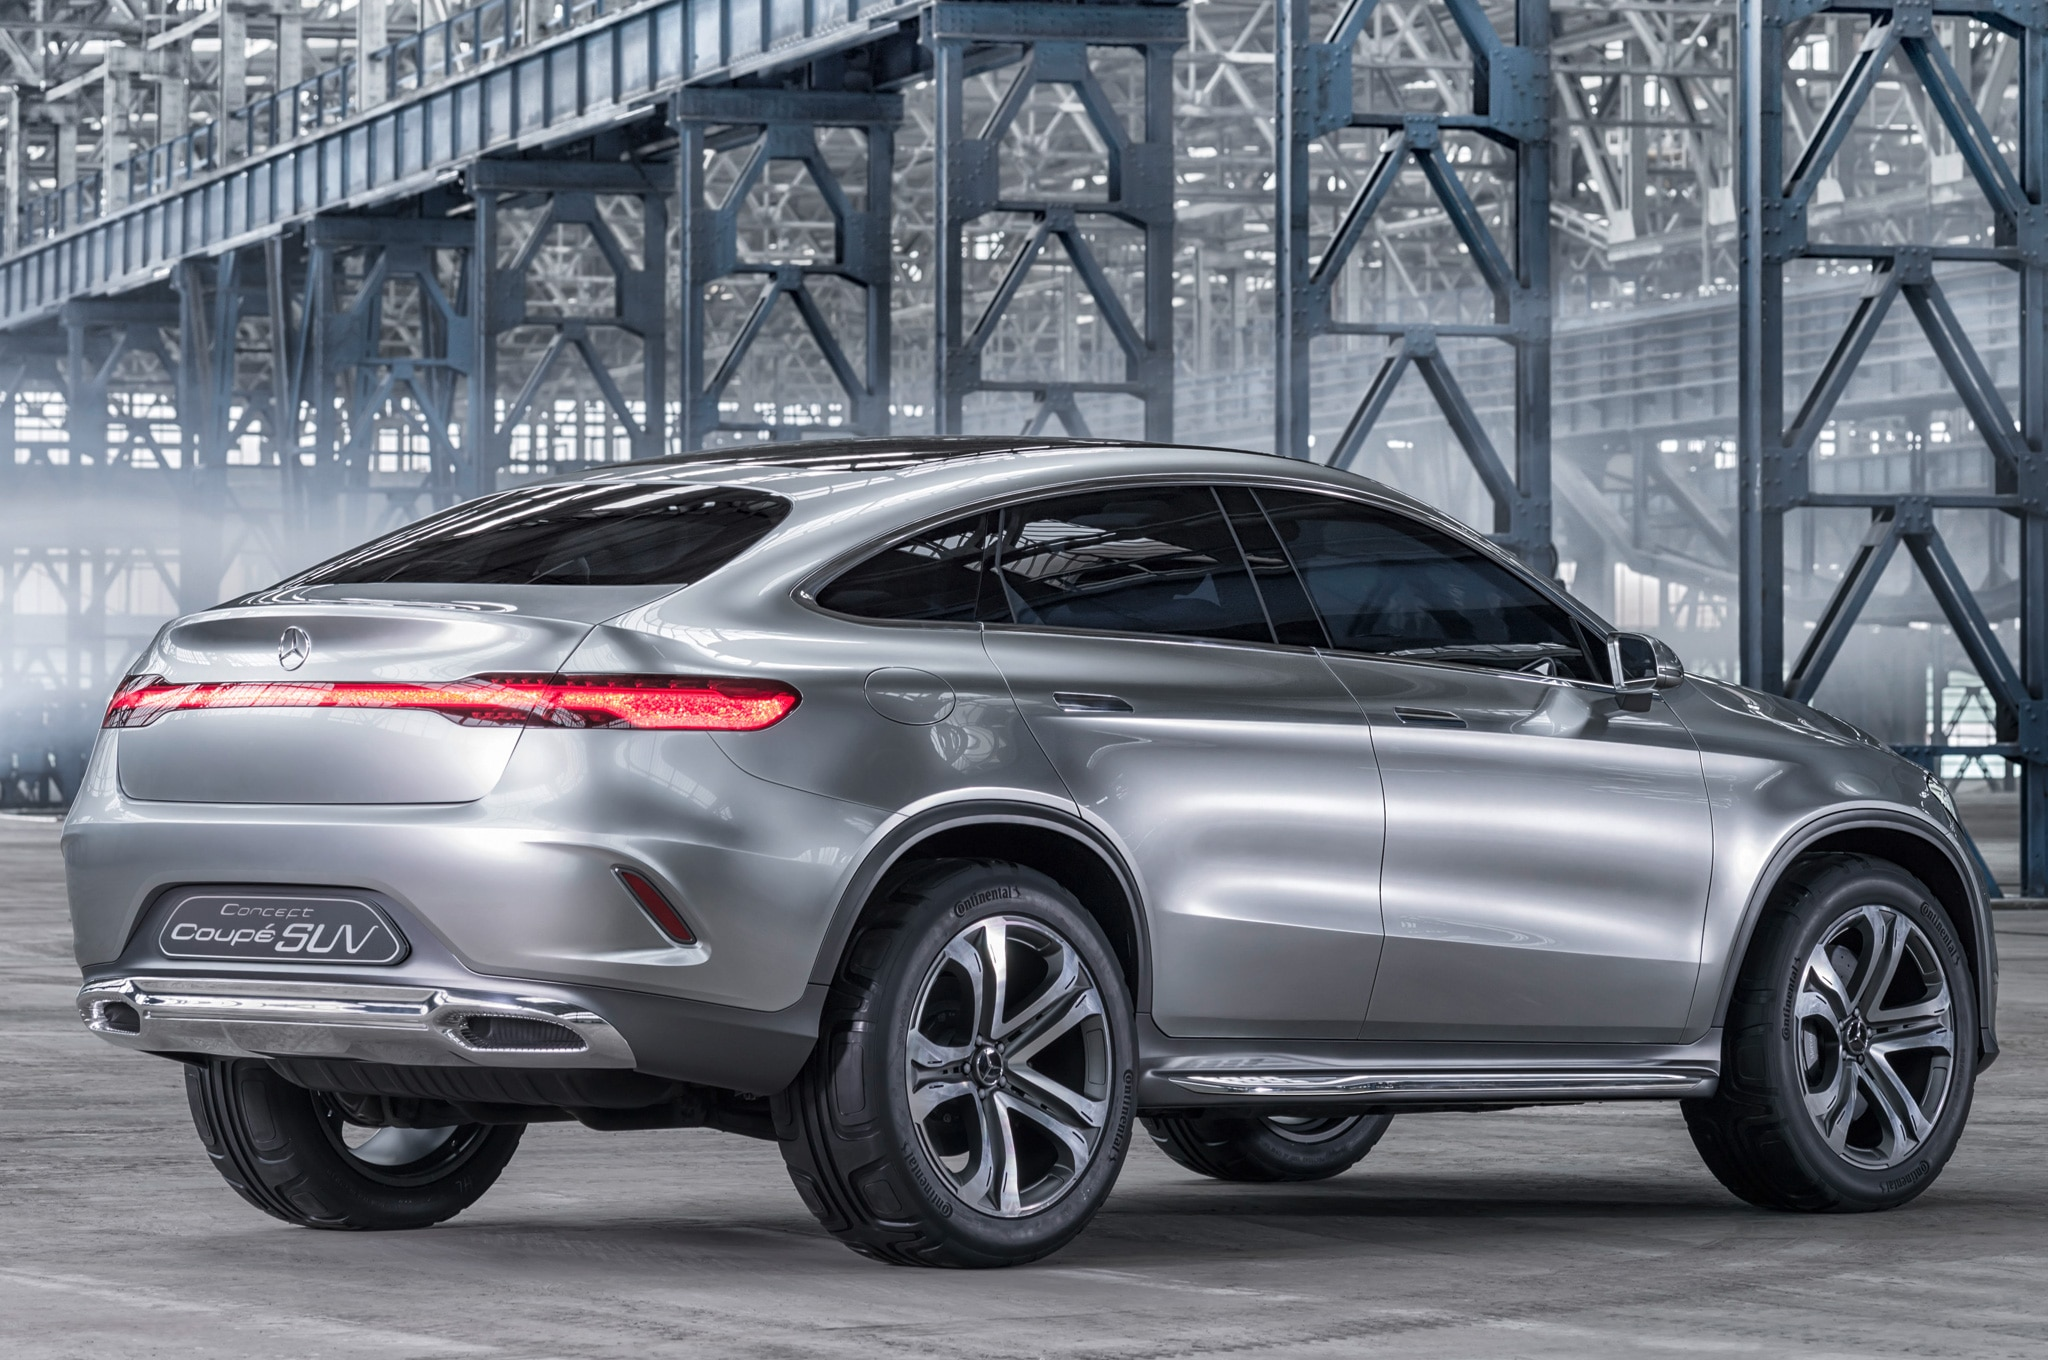 mercedes benz concept coupe suv rear side view static - Mercedes Benz Suv 2014 Interior